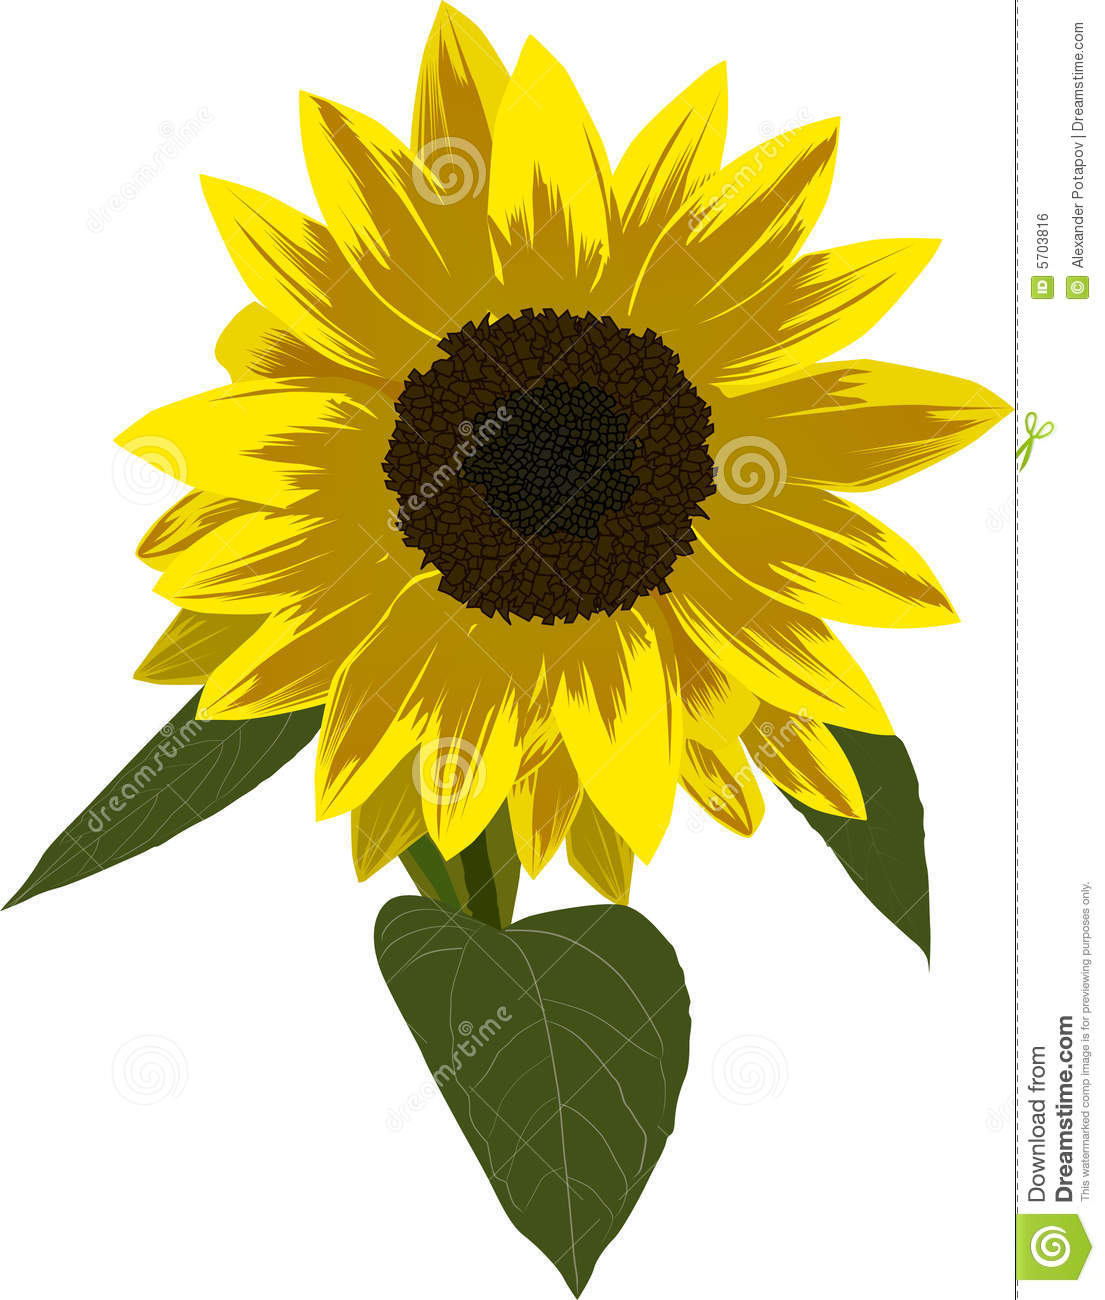 Single Sunflower Illustration Royalty Free Stock Image ...